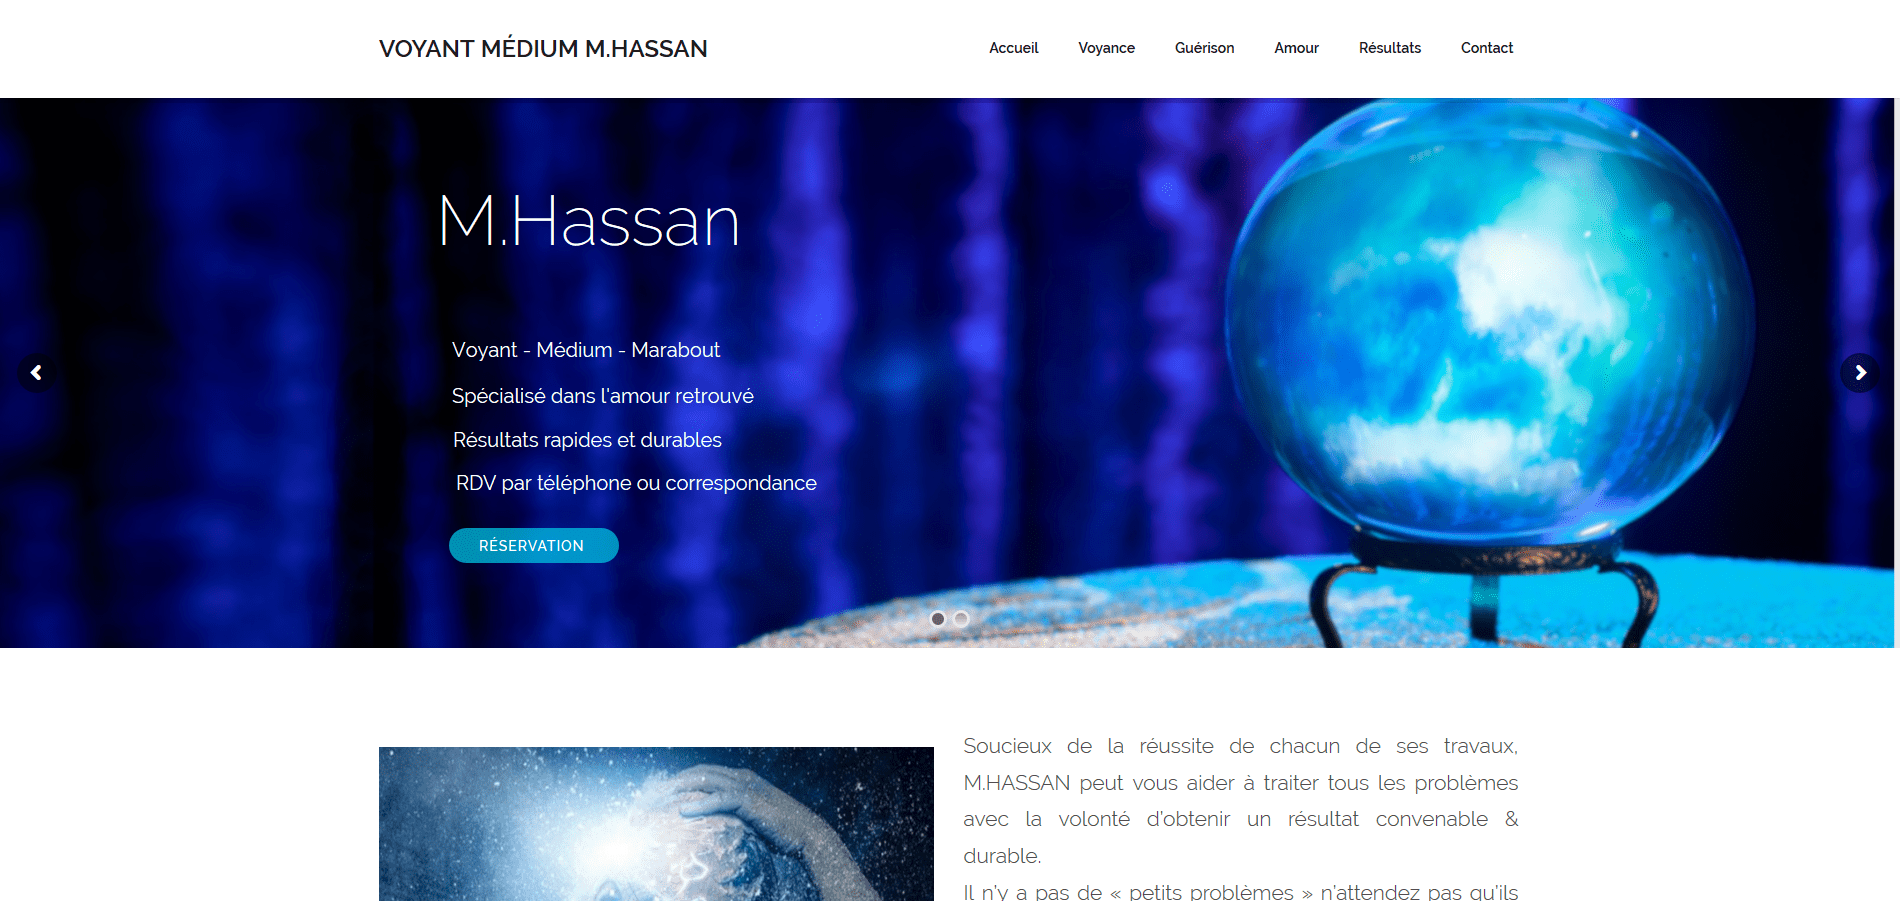 https://voyant-medium-hassan.com/